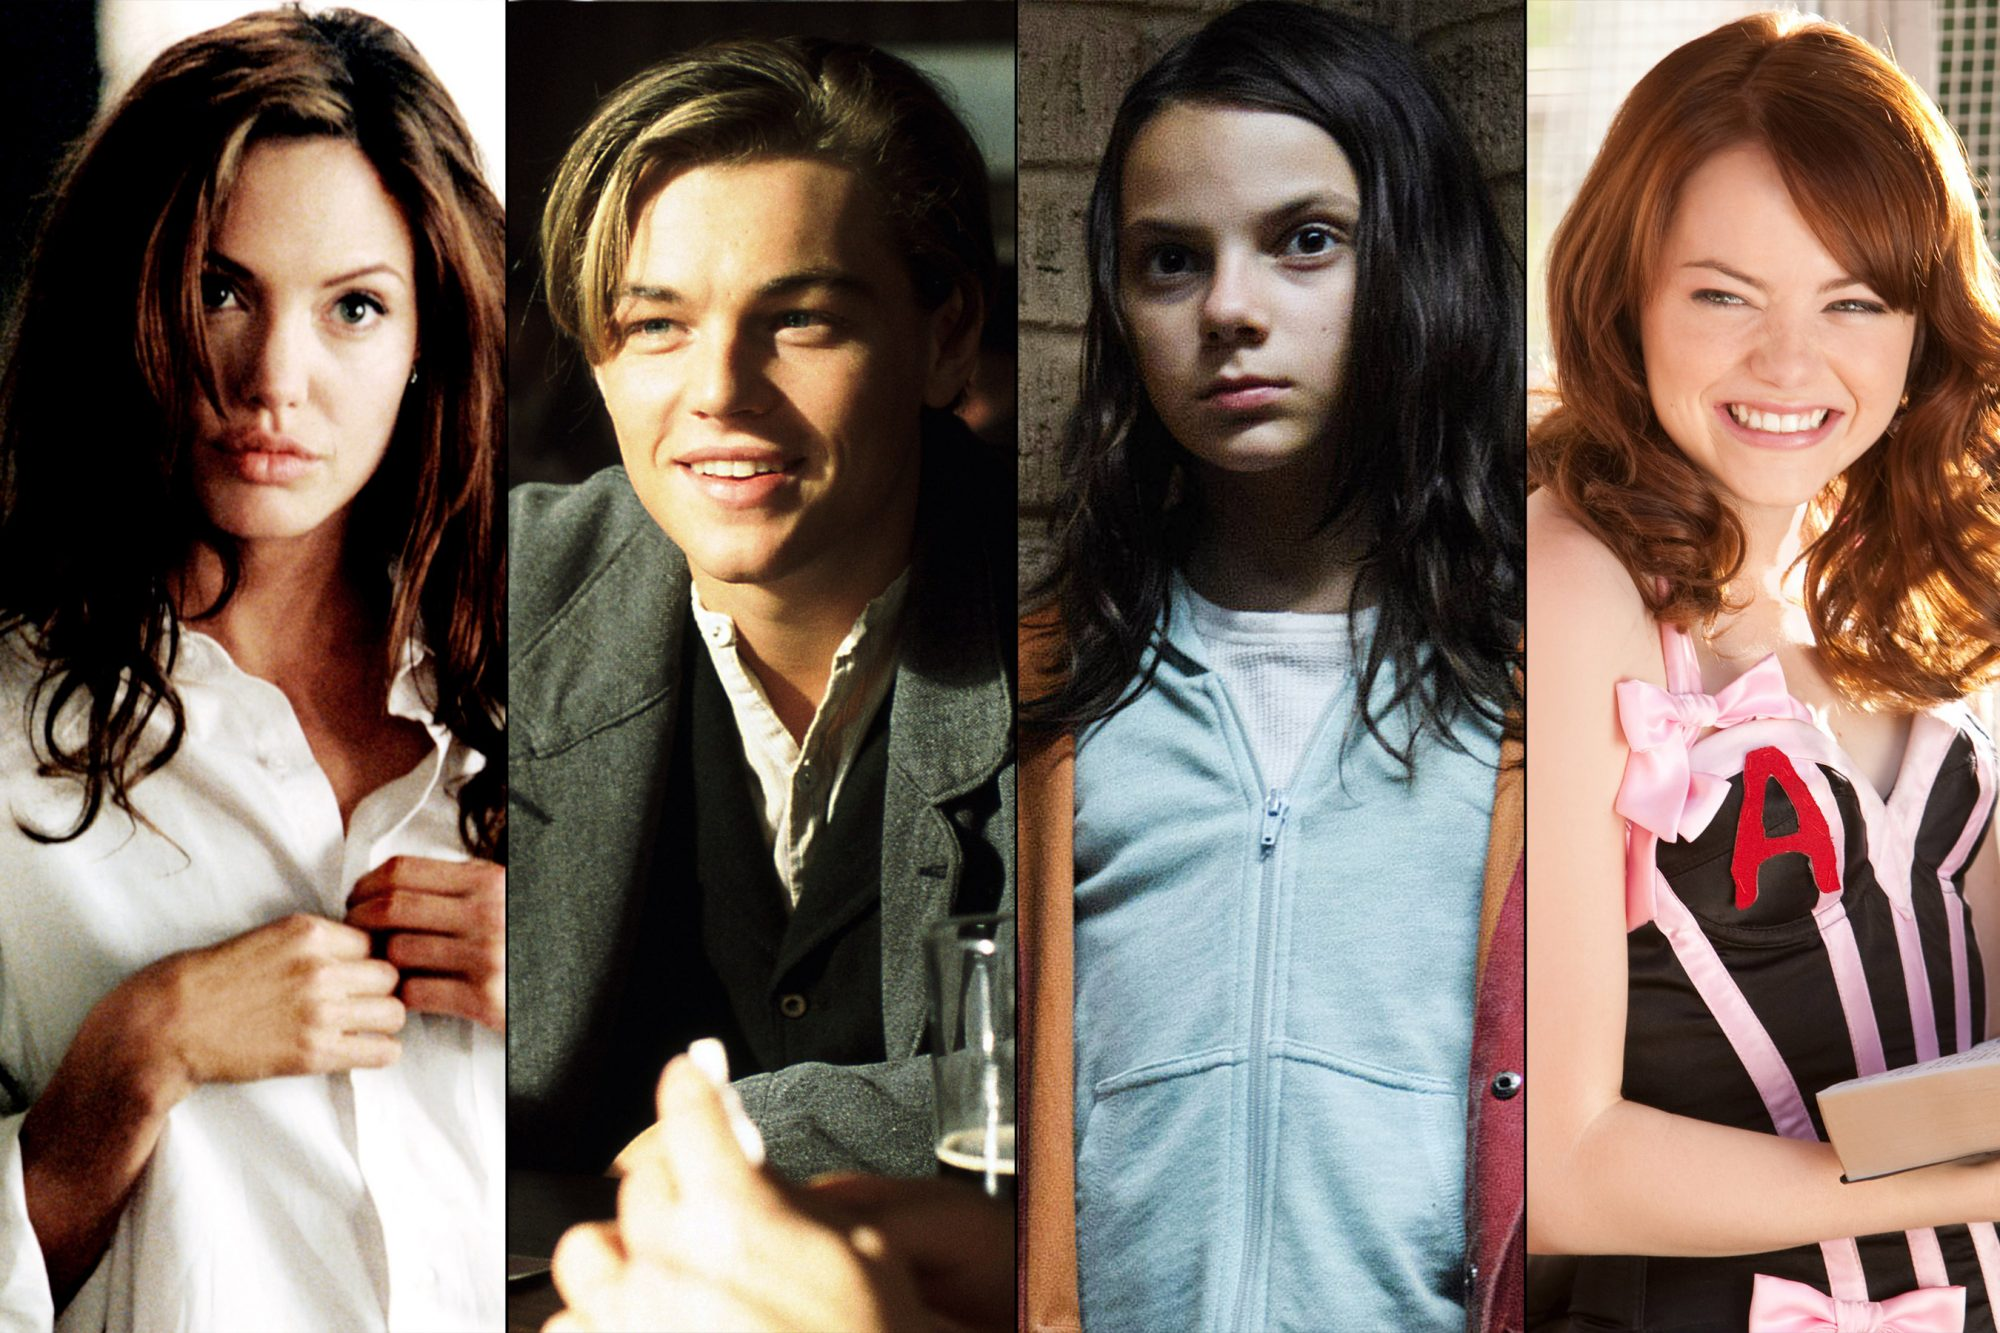 All About Anna 2005 Movie iconic roles almost playedanother actor | ew